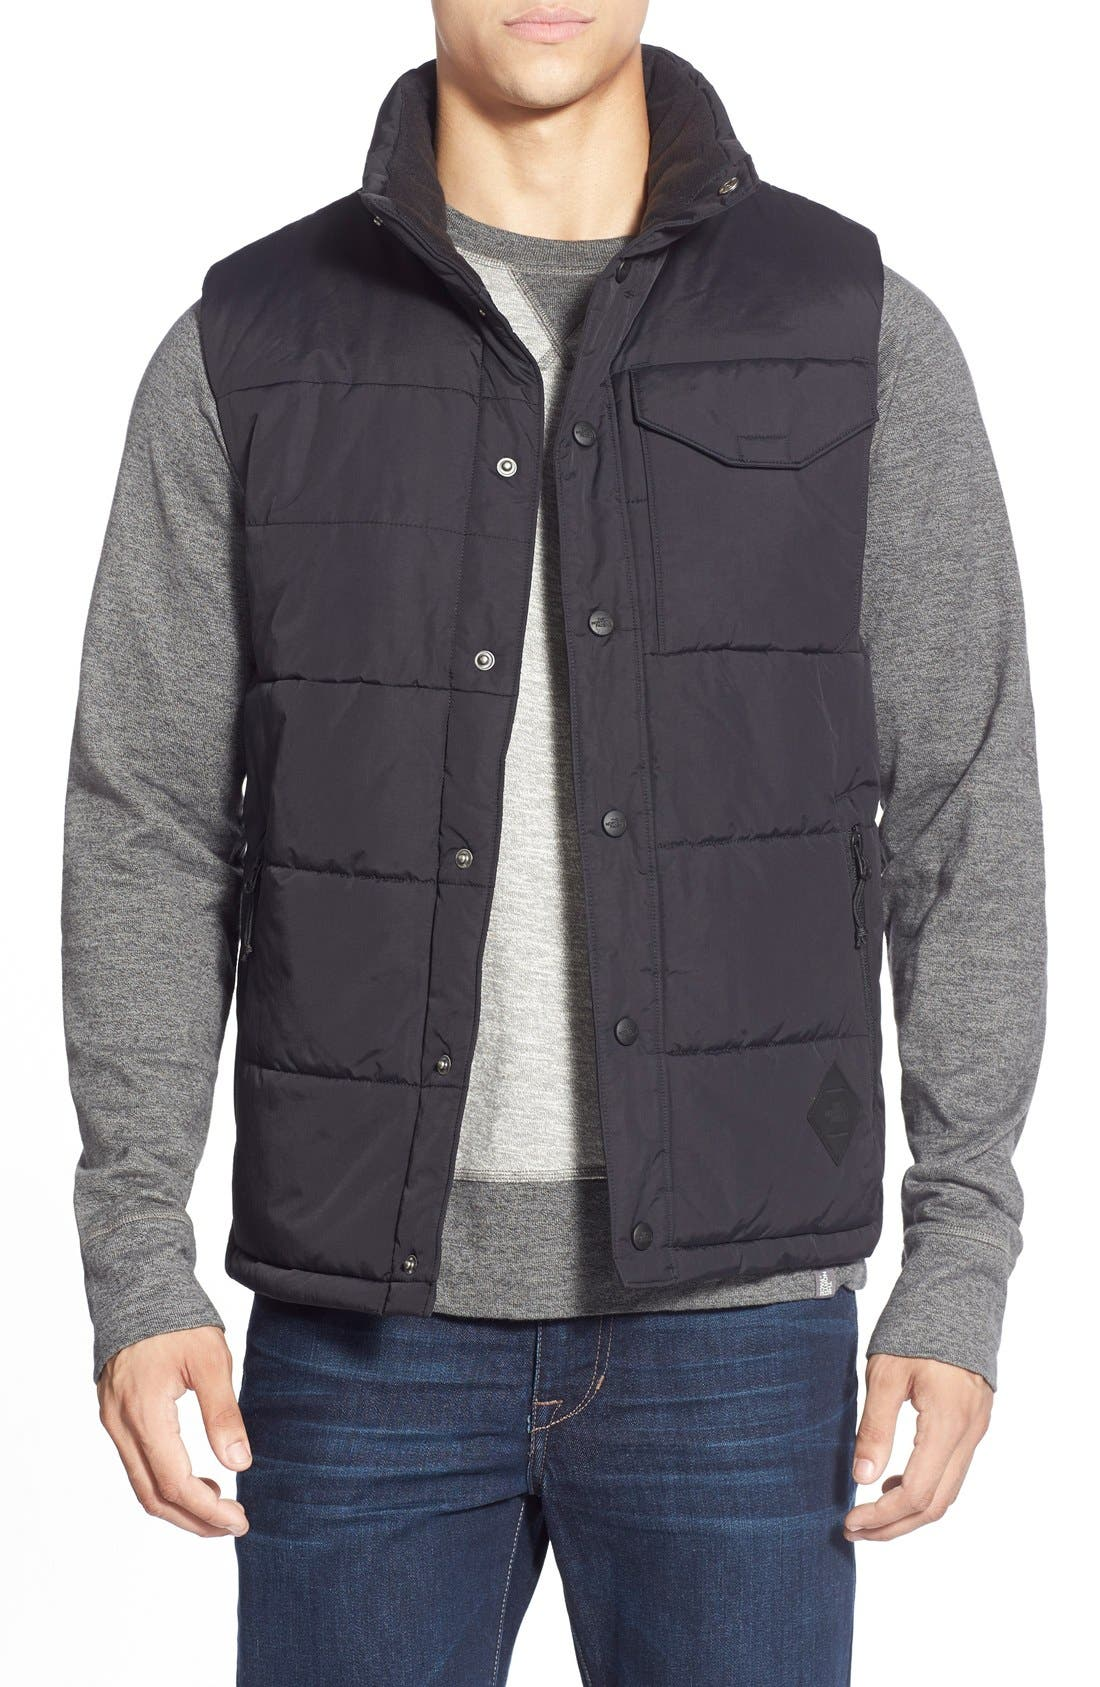 The North Face 'Patrick's Point' Quilted Vest